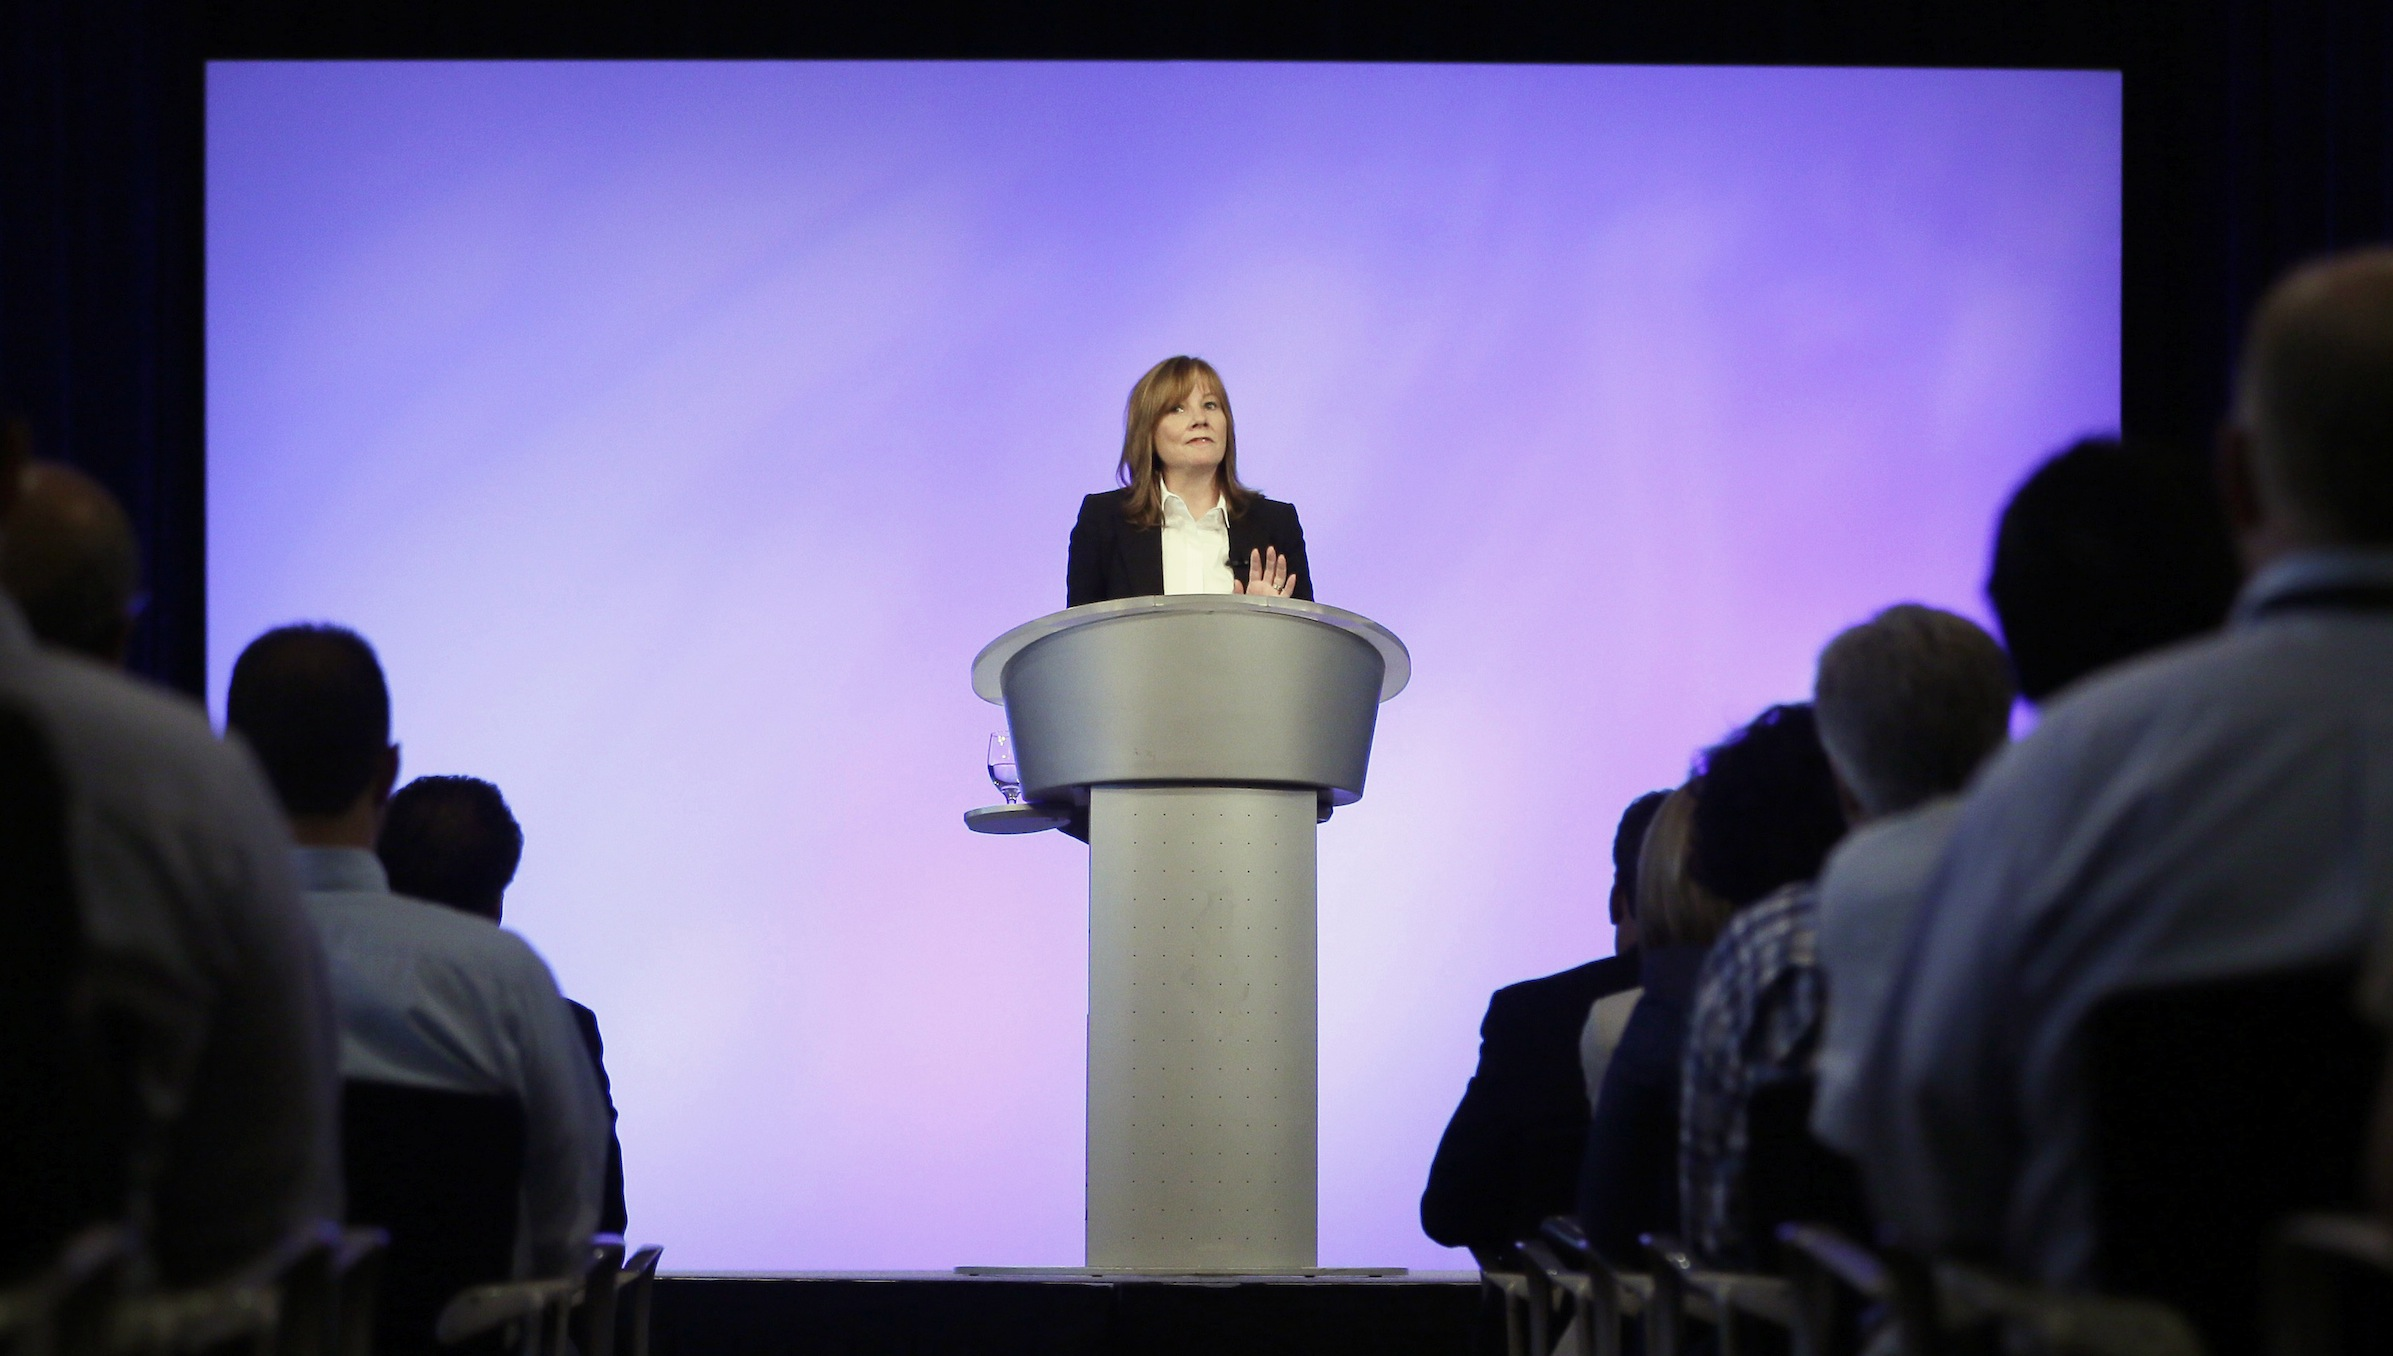 General Motors CEO Mary Barra addresses employees at the automaker's vehicle engineering center in Warren, Mich., Thursday, June 5, 2014. Barra said 15 employees have been fired and five others have been disciplined over the company's failure to disclose a defect with ignition switches that is now linked to at least 13 deaths. (AP Photo/Carlos Osorio)